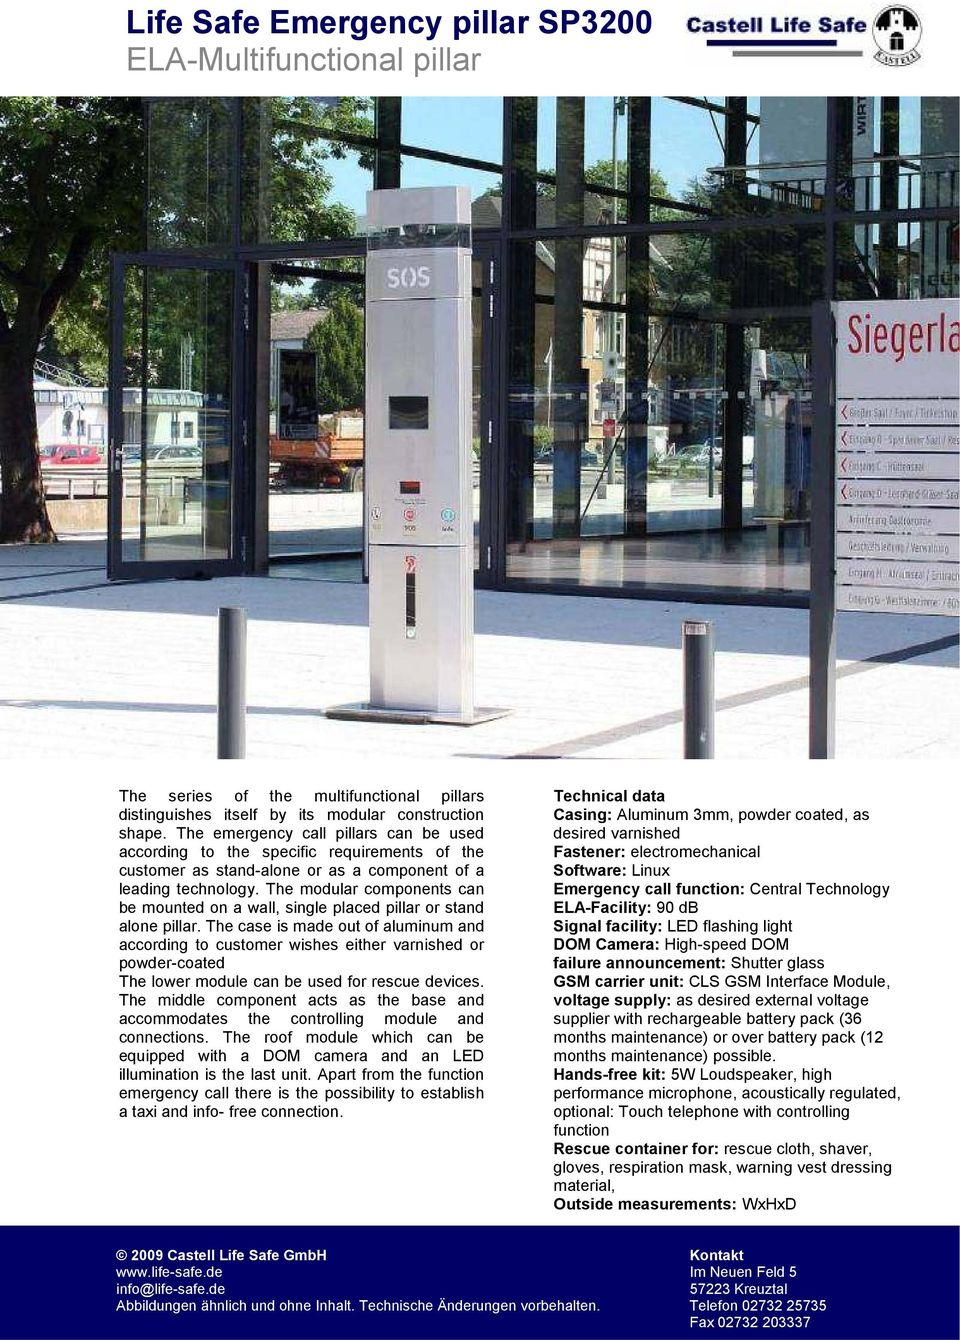 The modular components can be mounted on a wall, single placed pillar or stand alone pillar.